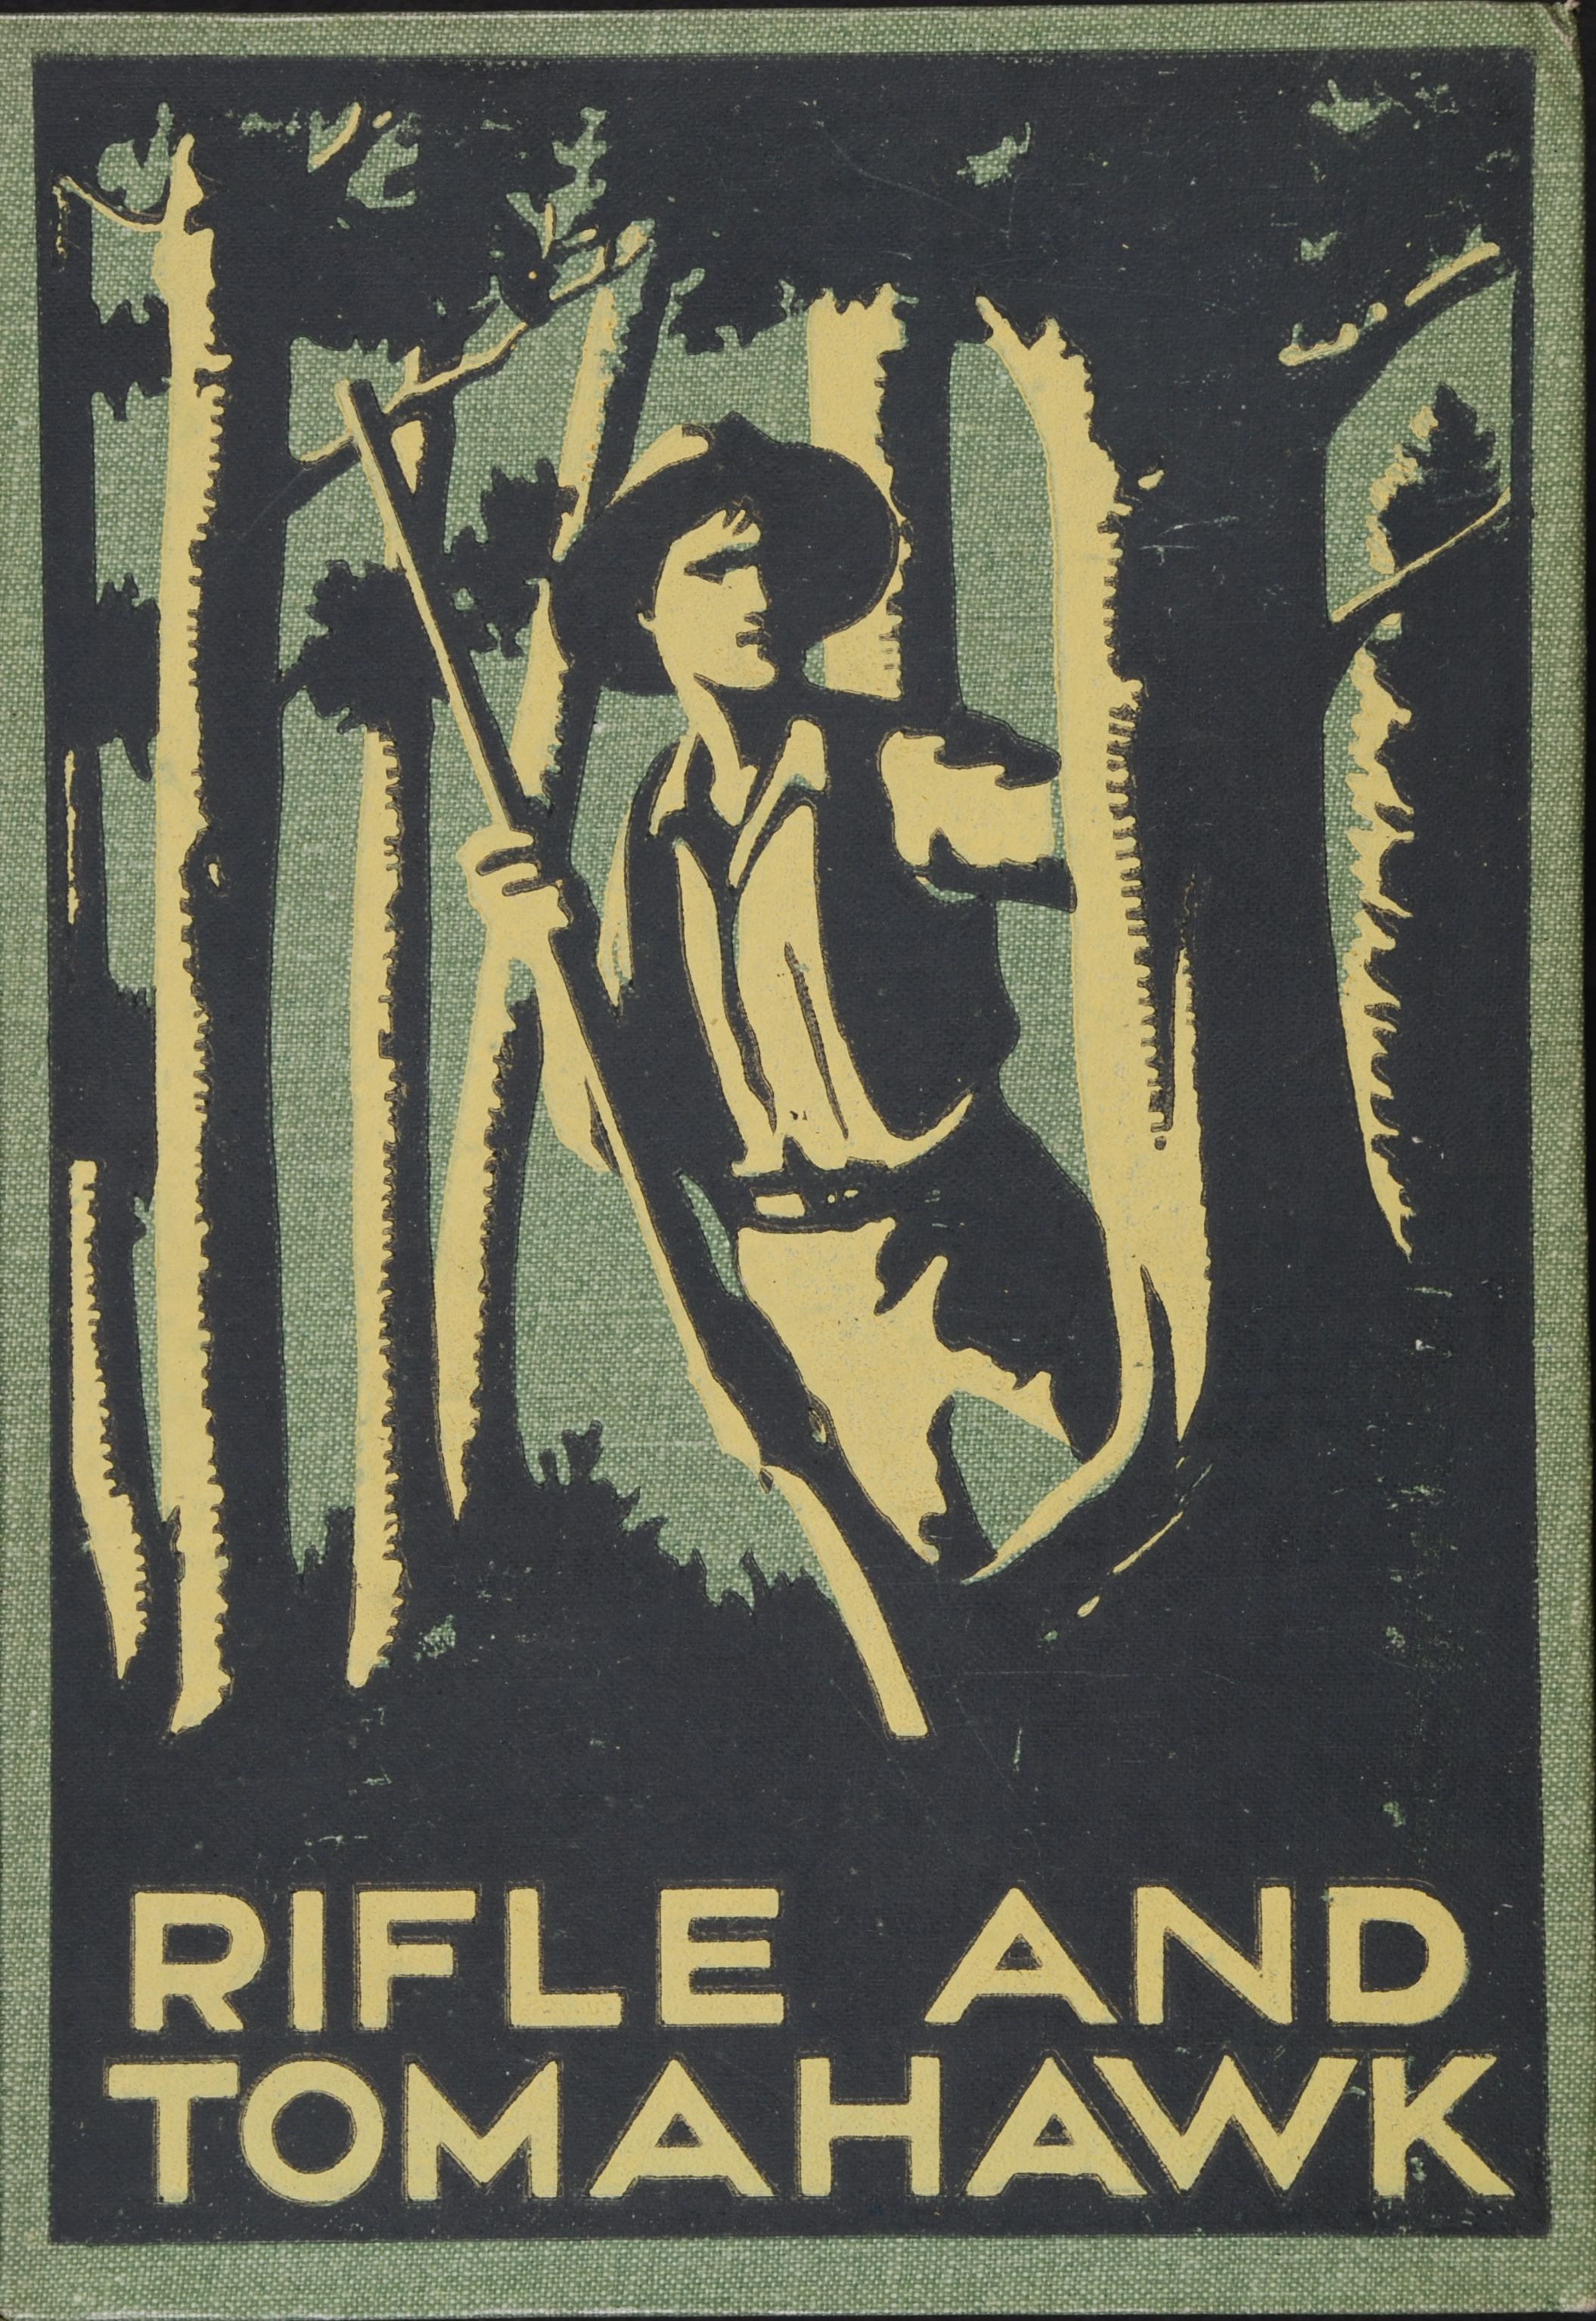 Mona Tracy. Rifle and tomahawk. Auckland, N.Z.: Hodder and Stoughton, 1927.